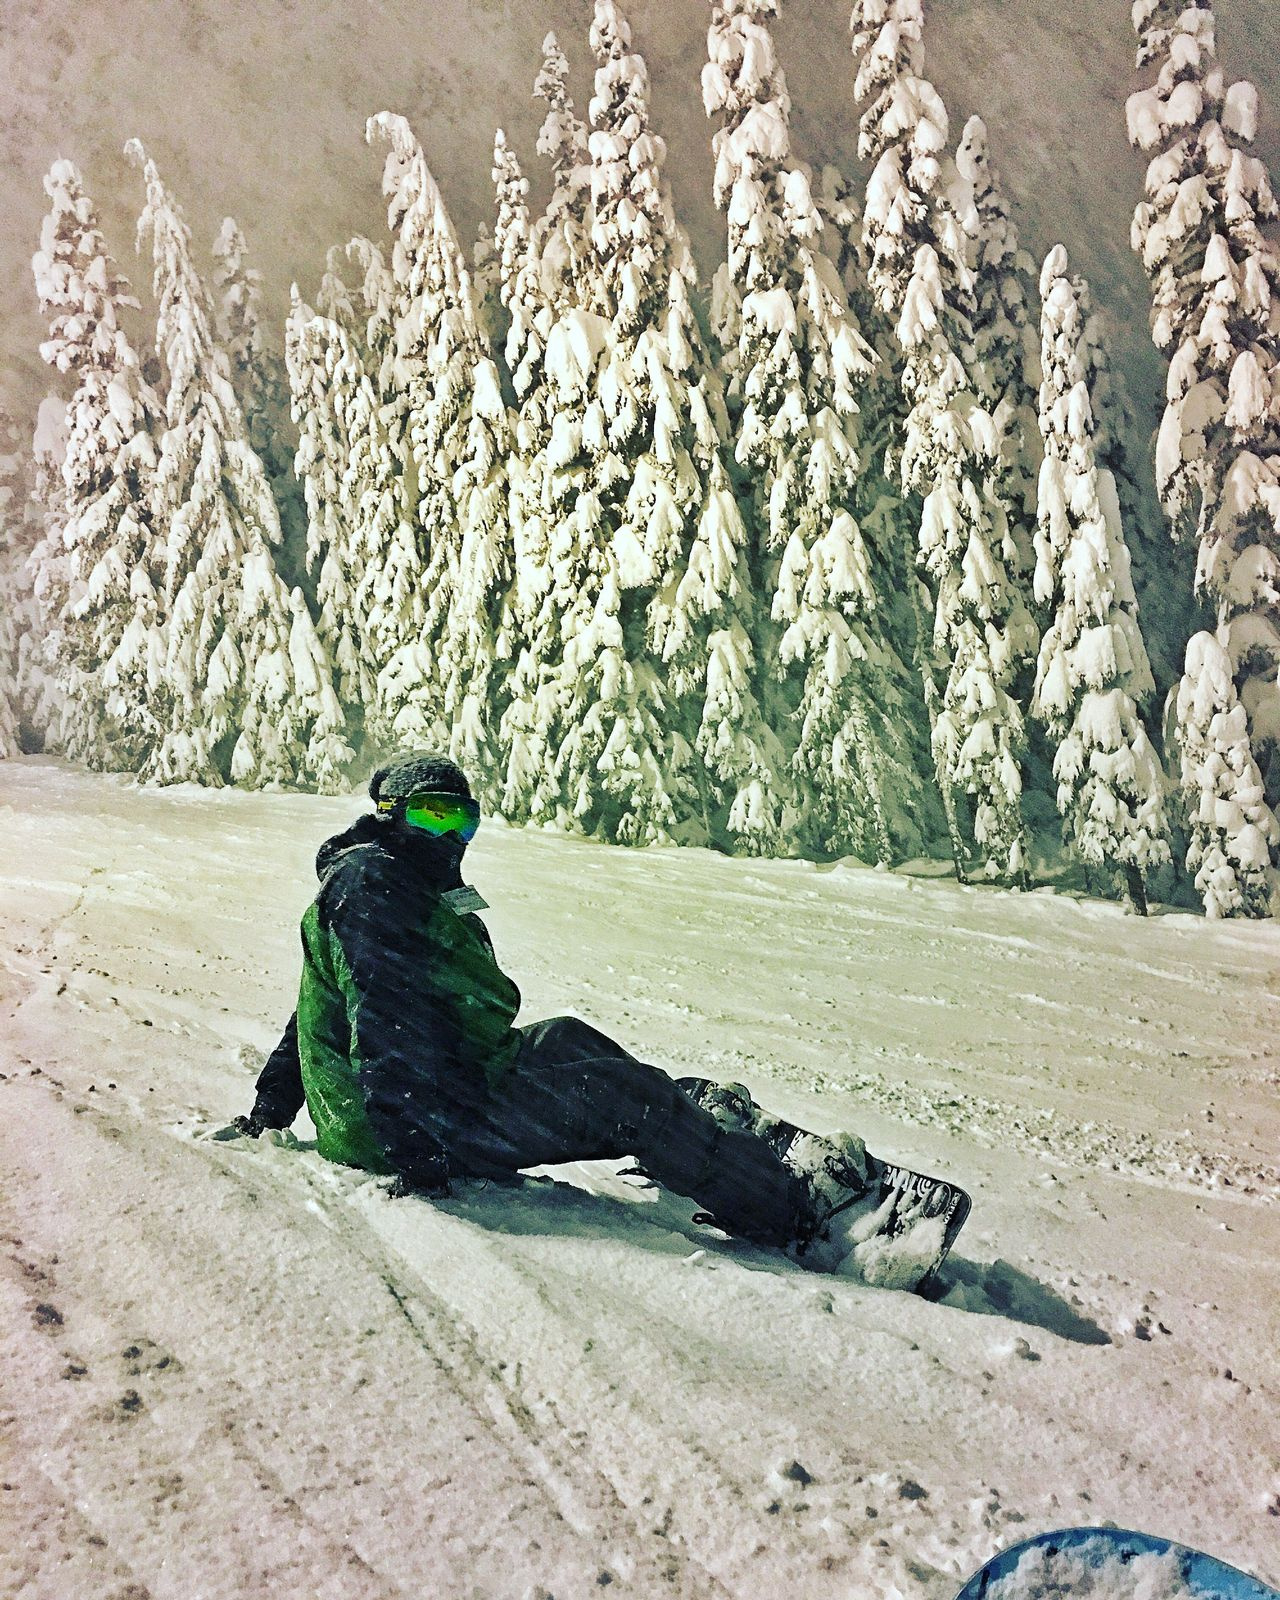 Snowboarding!!! Sitting Outdoors Skibowl Oregonexplored Snowboarding ❤ Snow ❄ Somuchfun ImHooked Love At First Ride